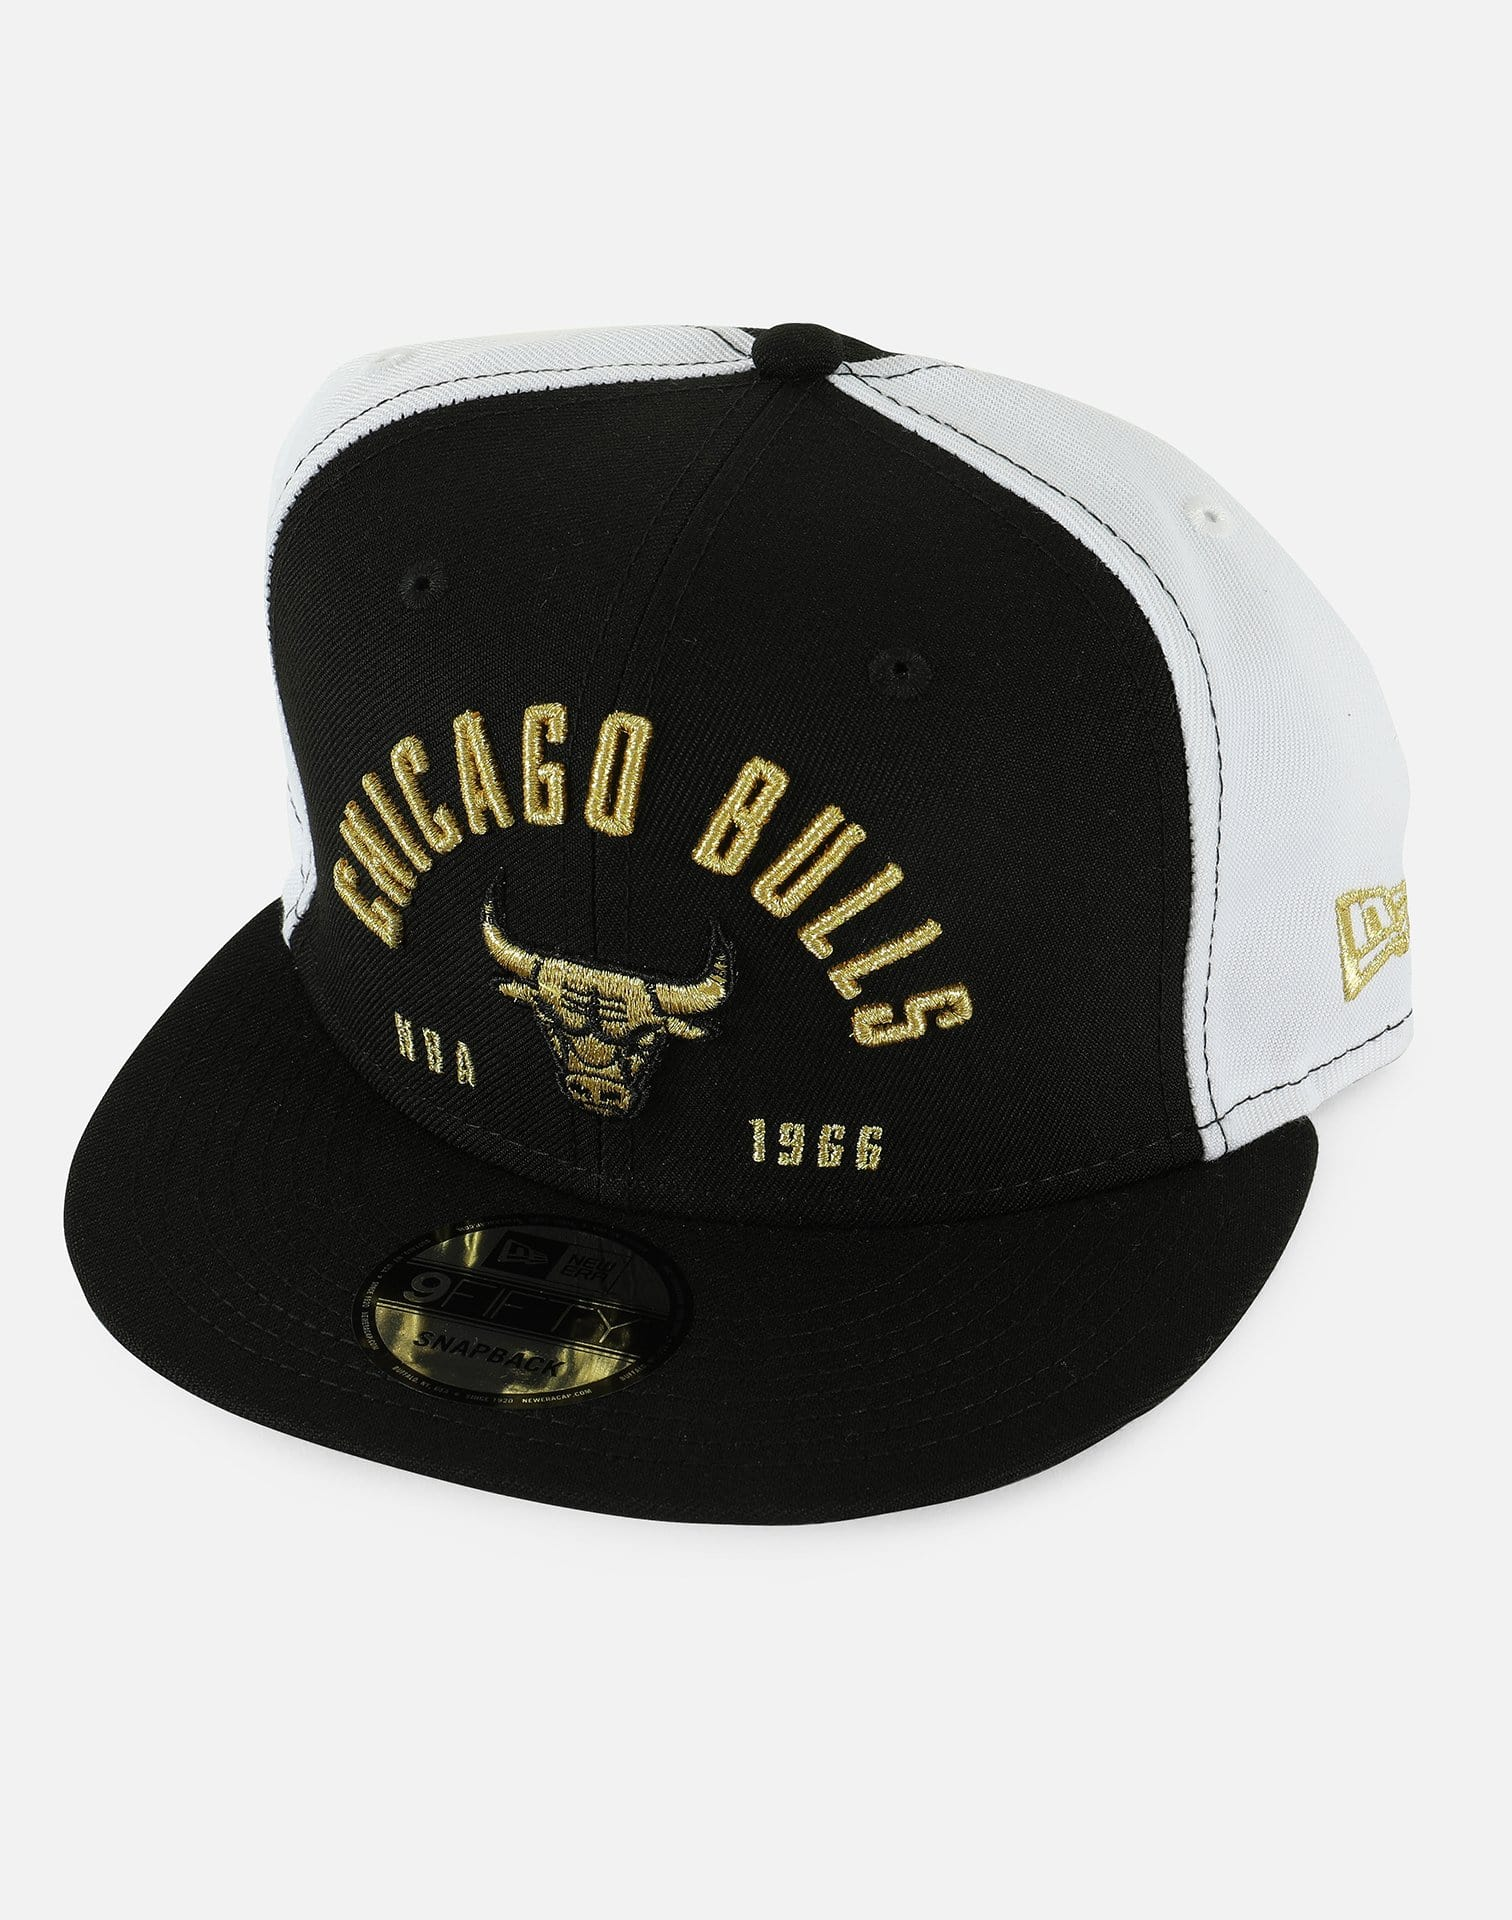 New Era NBA Chicago Bulls Establisher 9Fifty Snapback Hat